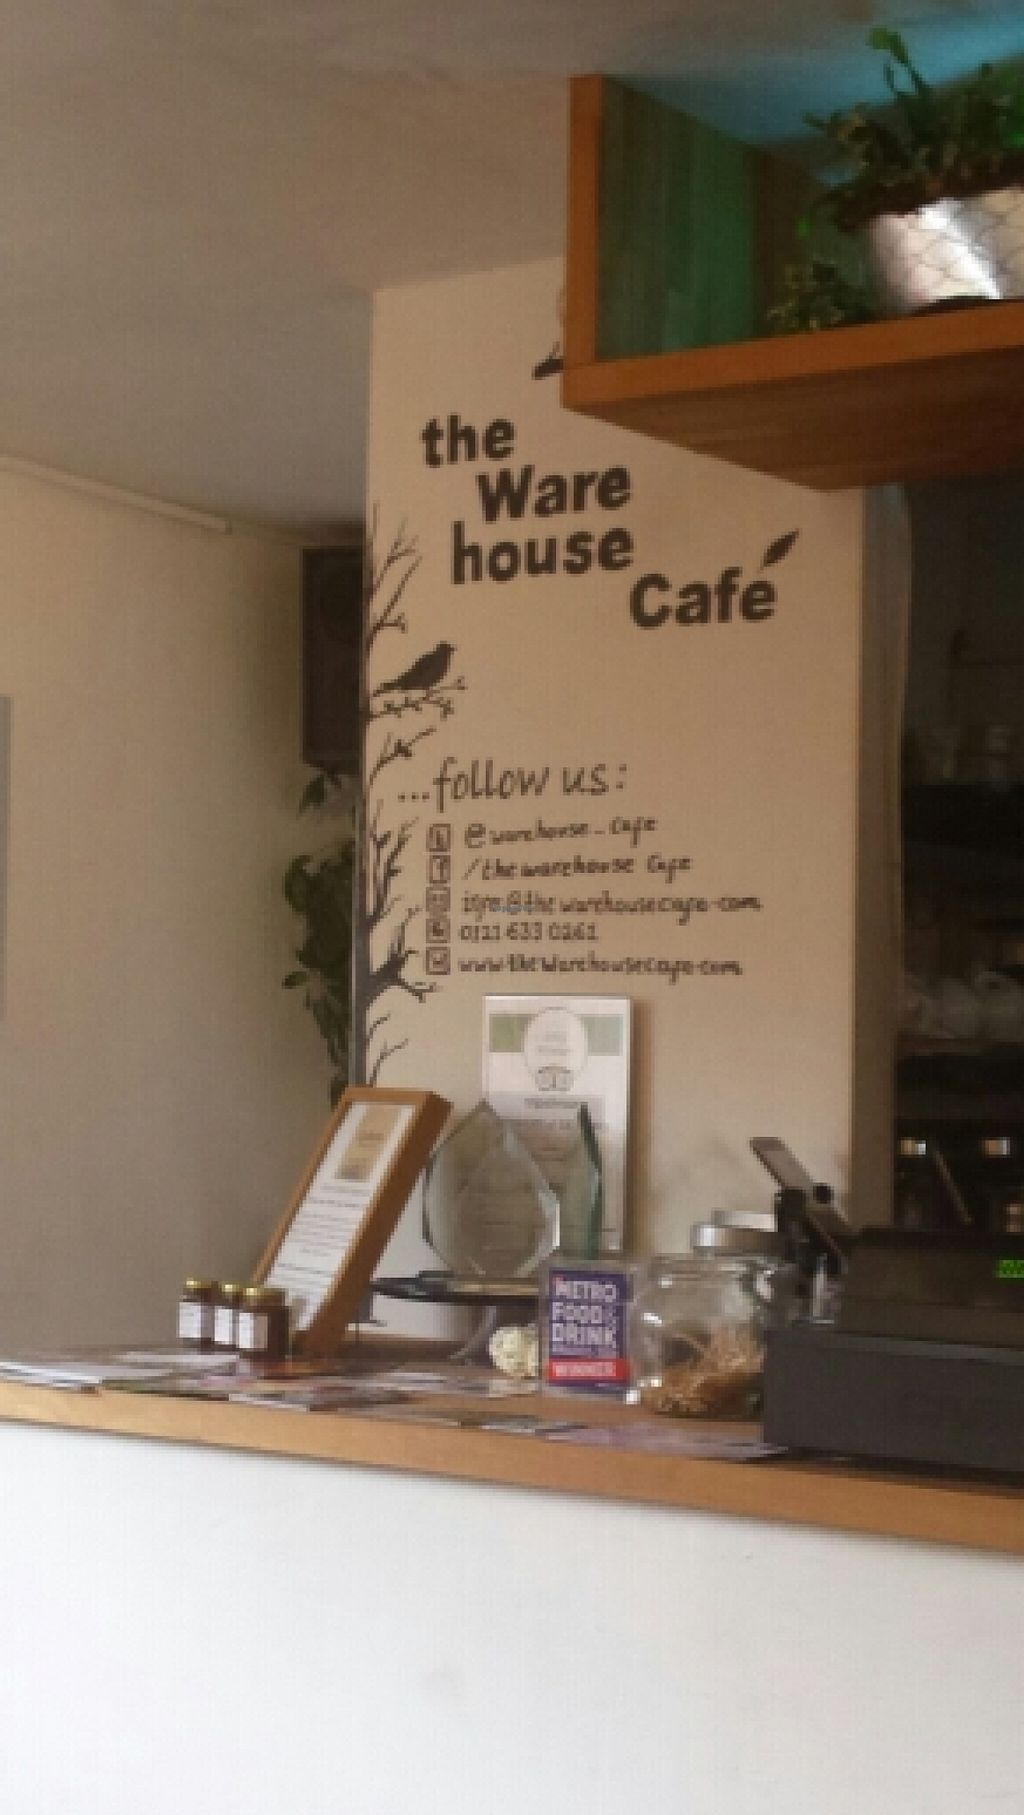 """Photo of The Warehouse Cafe  by <a href=""""/members/profile/Good%20for%20Vegans"""">Good for Vegans</a> <br/>Counter <br/> October 9, 2015  - <a href='/contact/abuse/image/640/120716'>Report</a>"""